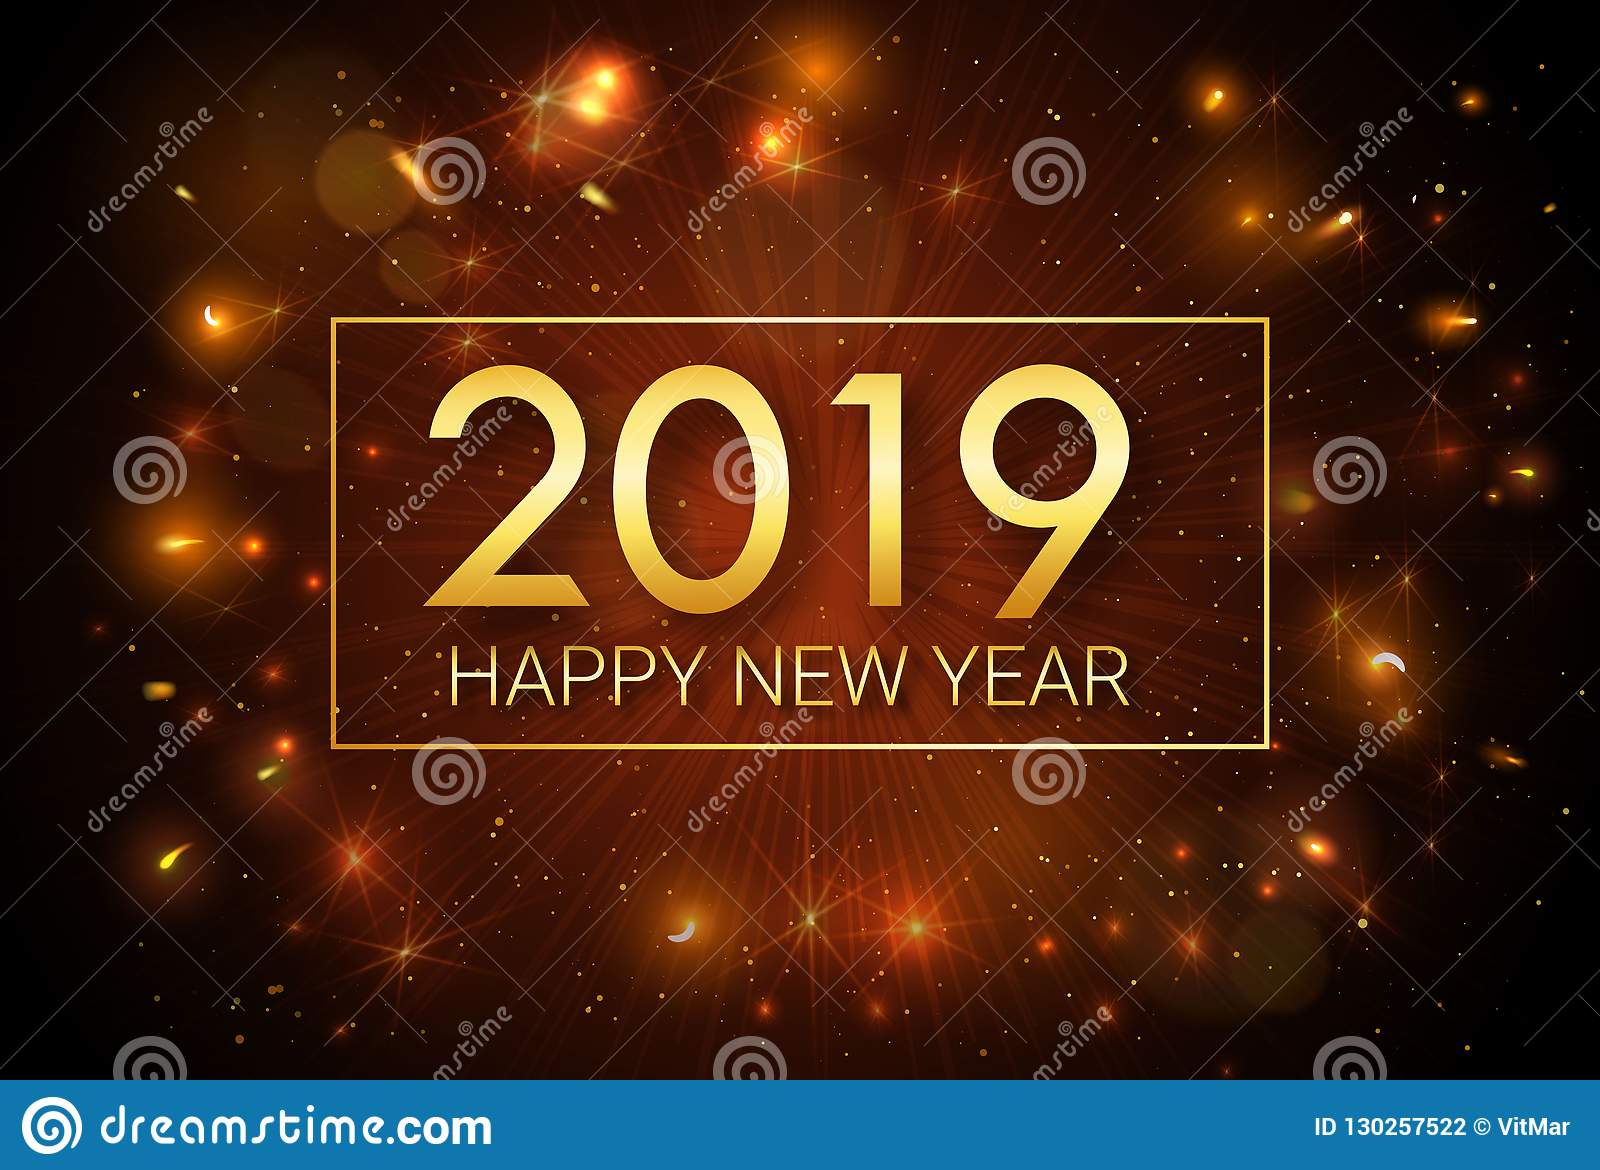 happy new year 2019 christmas greeting golden inscription on the background of fireworks